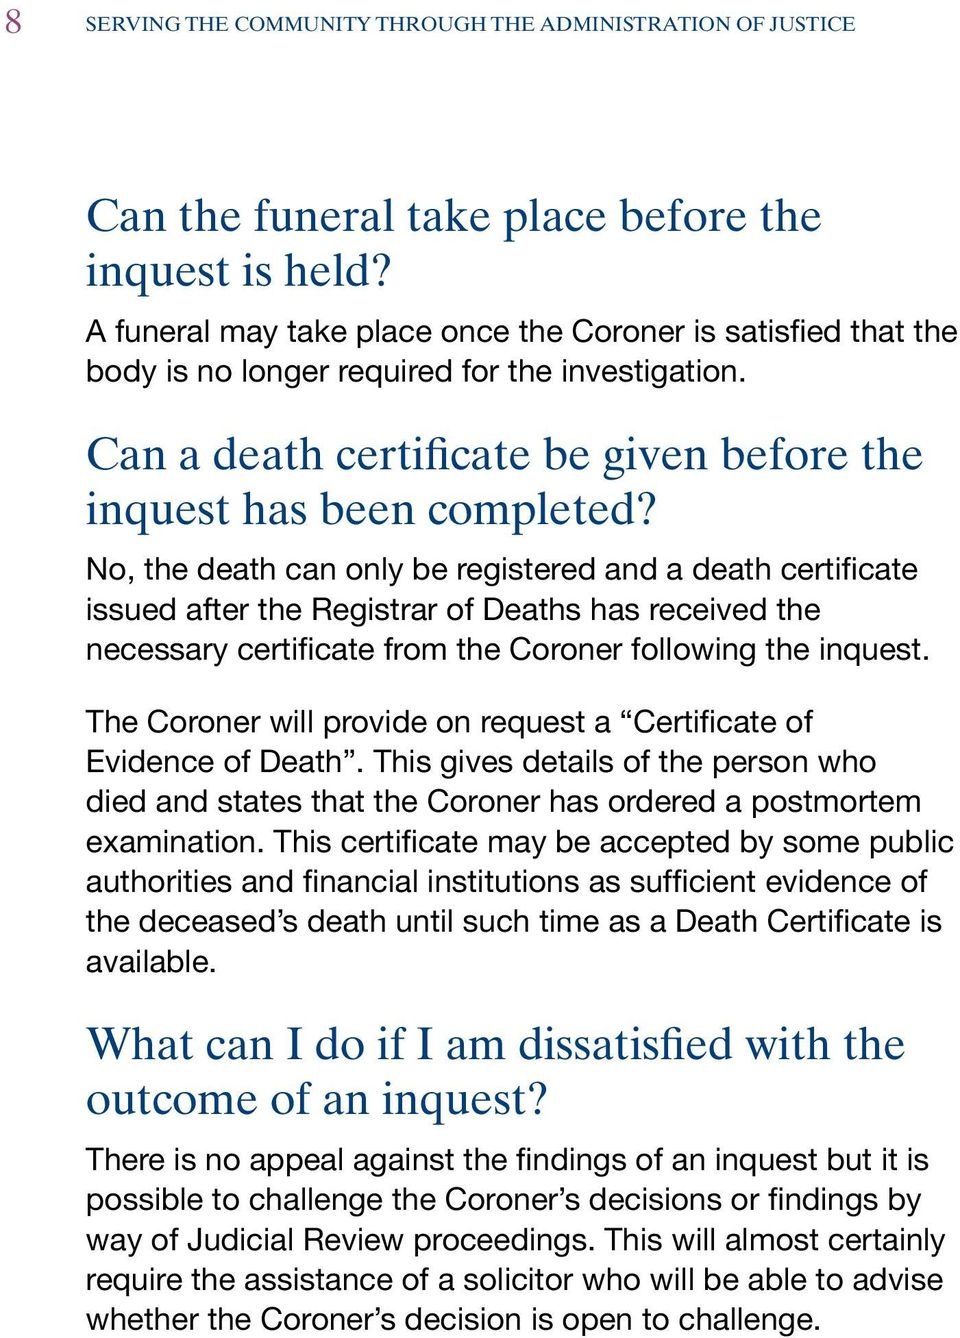 No, the death can only be registered and a death certificate issued after the Registrar of Deaths has received the necessary certificate from the Coroner following the inquest.